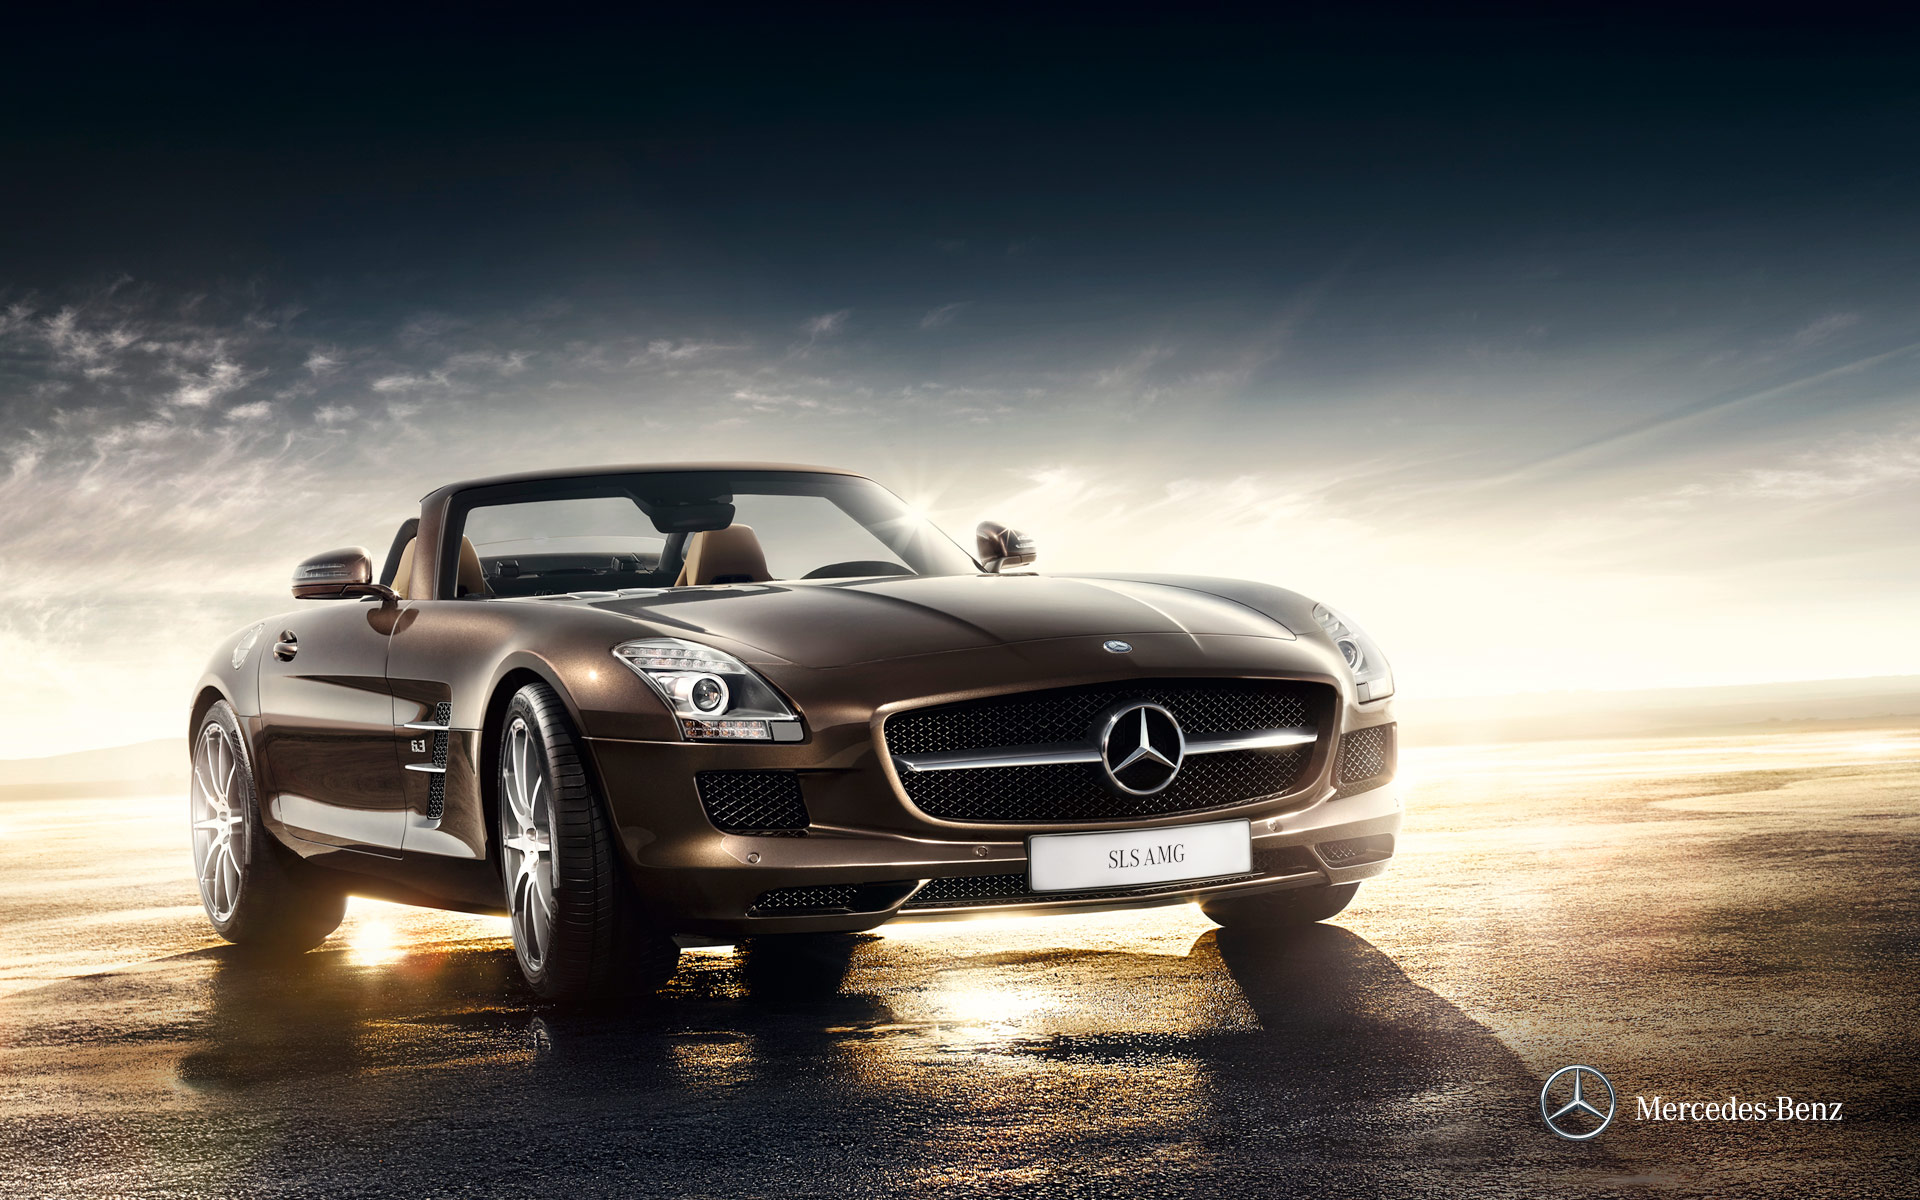 Mercedes benz sls amg 2012 sls coupe in bahrain new car for Mercedes benz new car prices